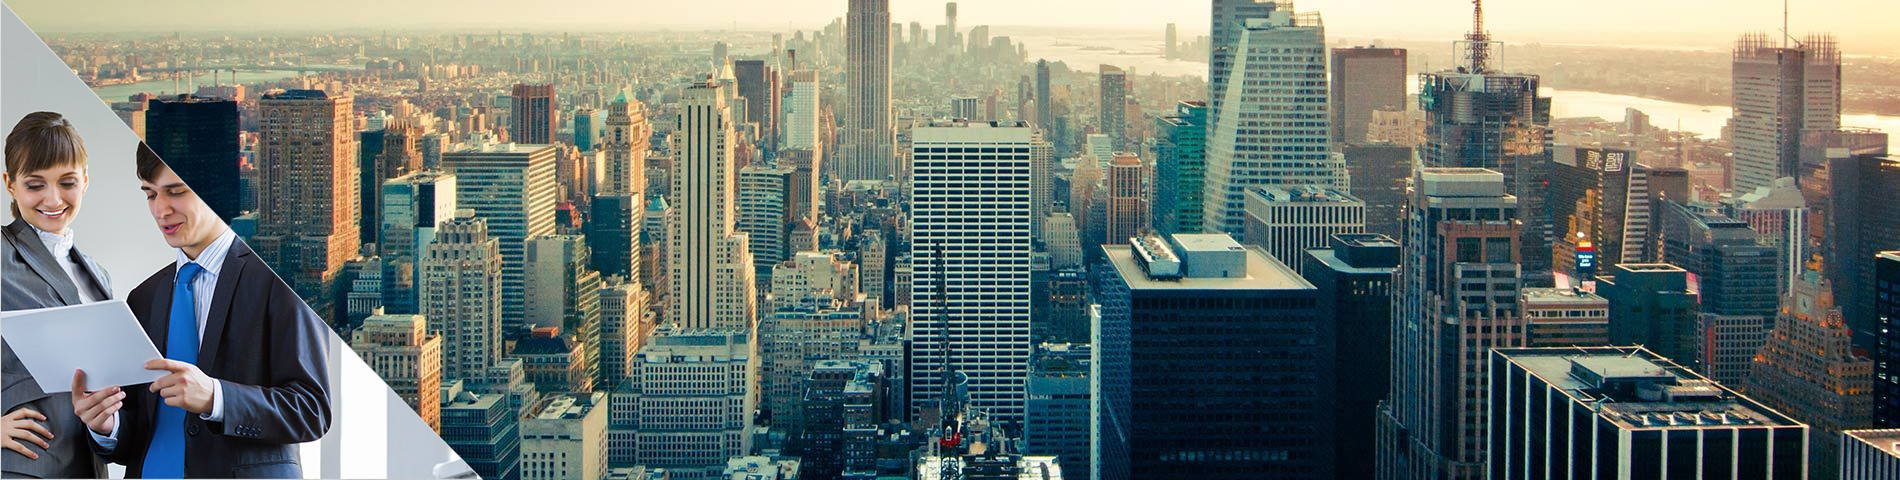 New York - Individuell businesskurs